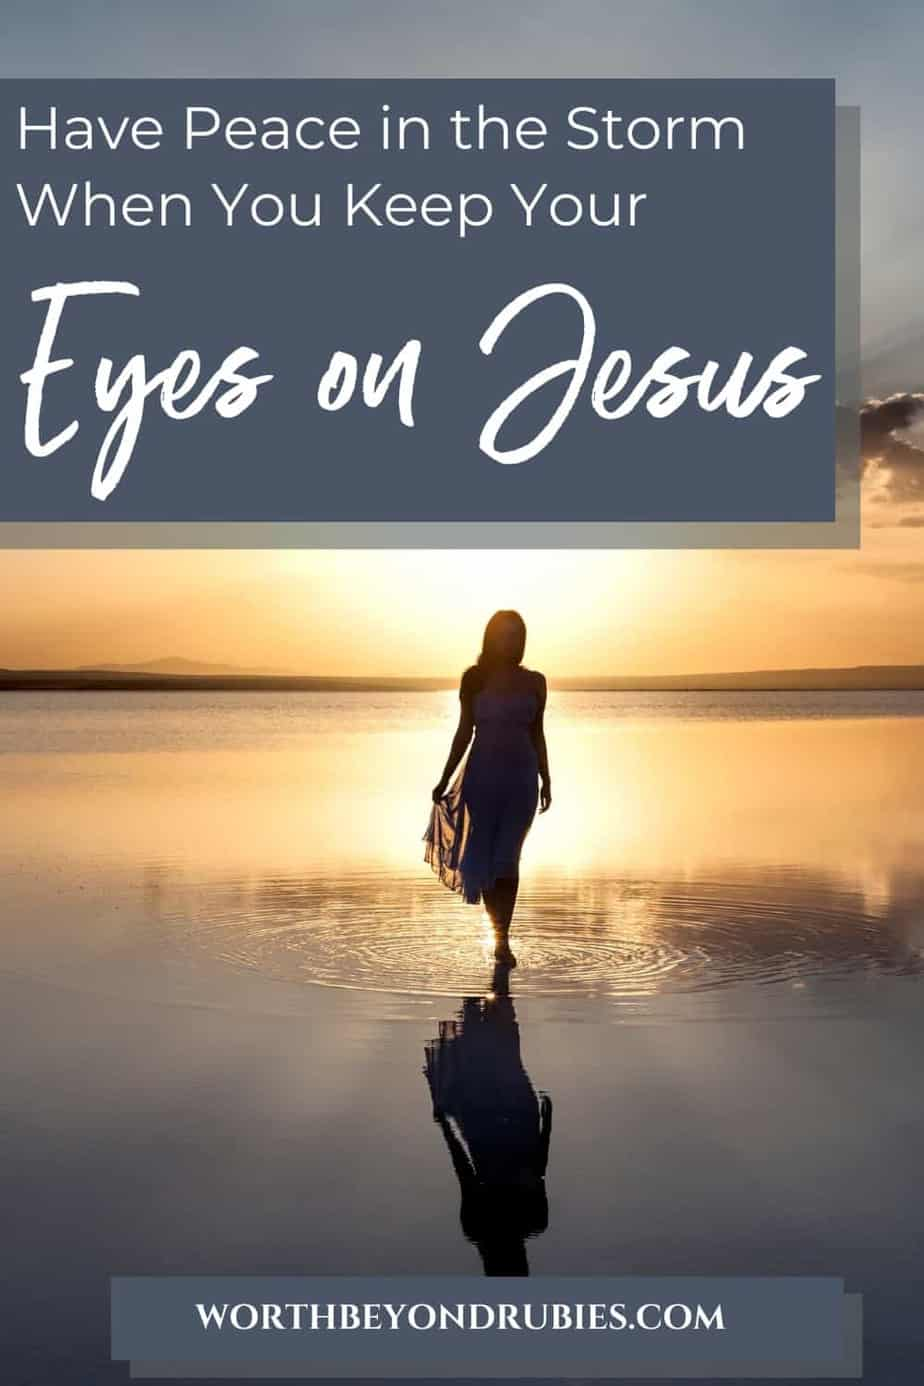 An image of a woman taken from behind and she is walking out onto the water at sunset with text that says Have Peace in the Midst of the Storm When You Keep Your Eyes on Jesus